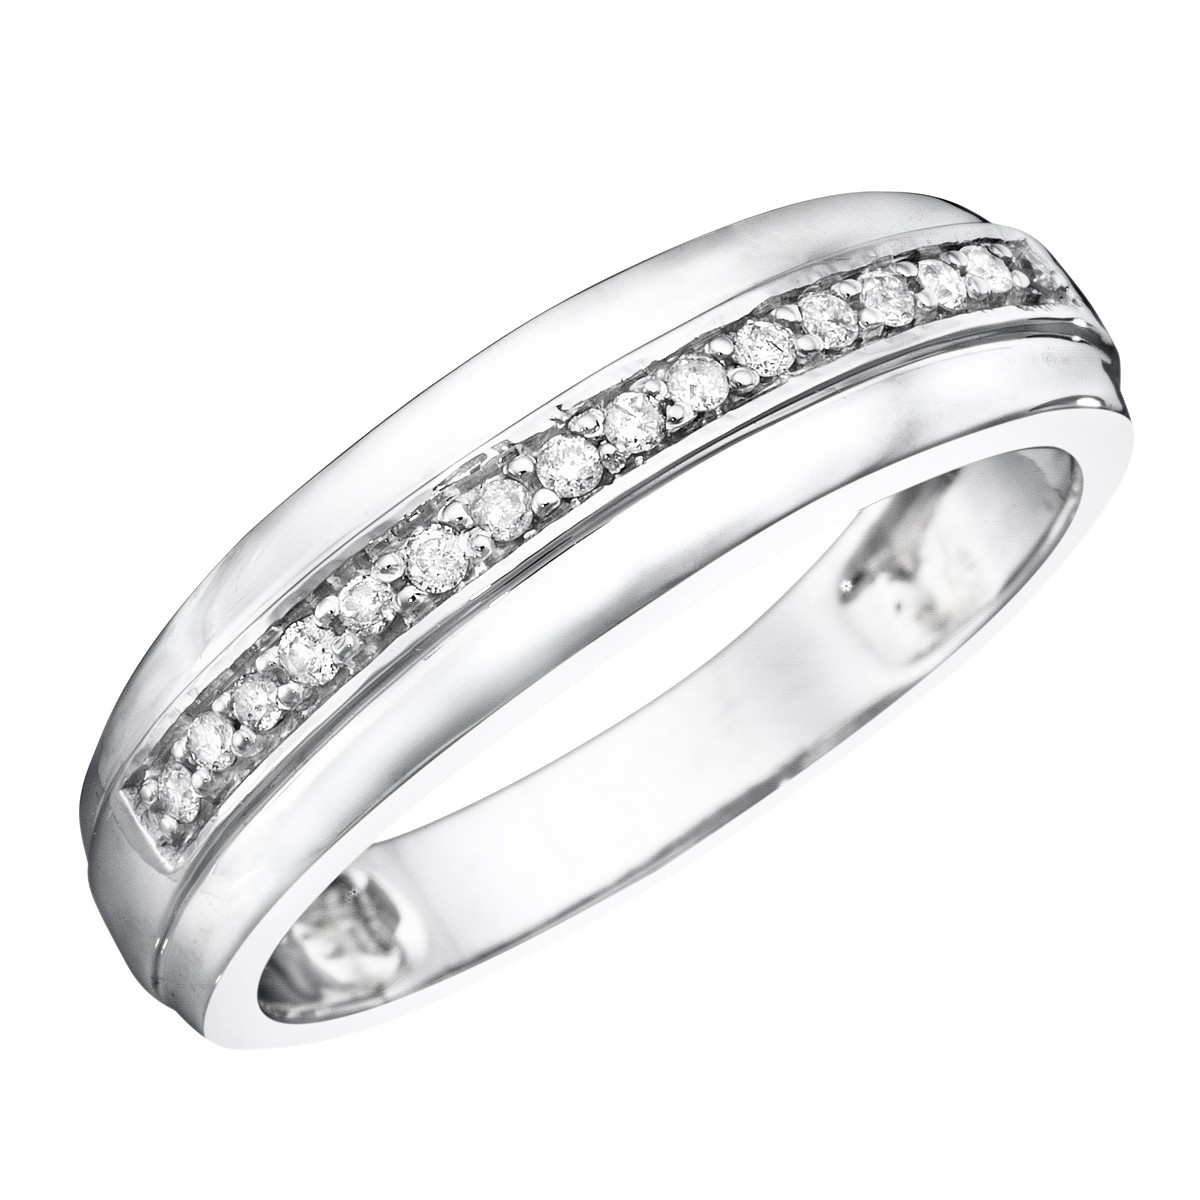 1/5 CT. T.W. Diamond Men's Wedding Band 10K White Gold